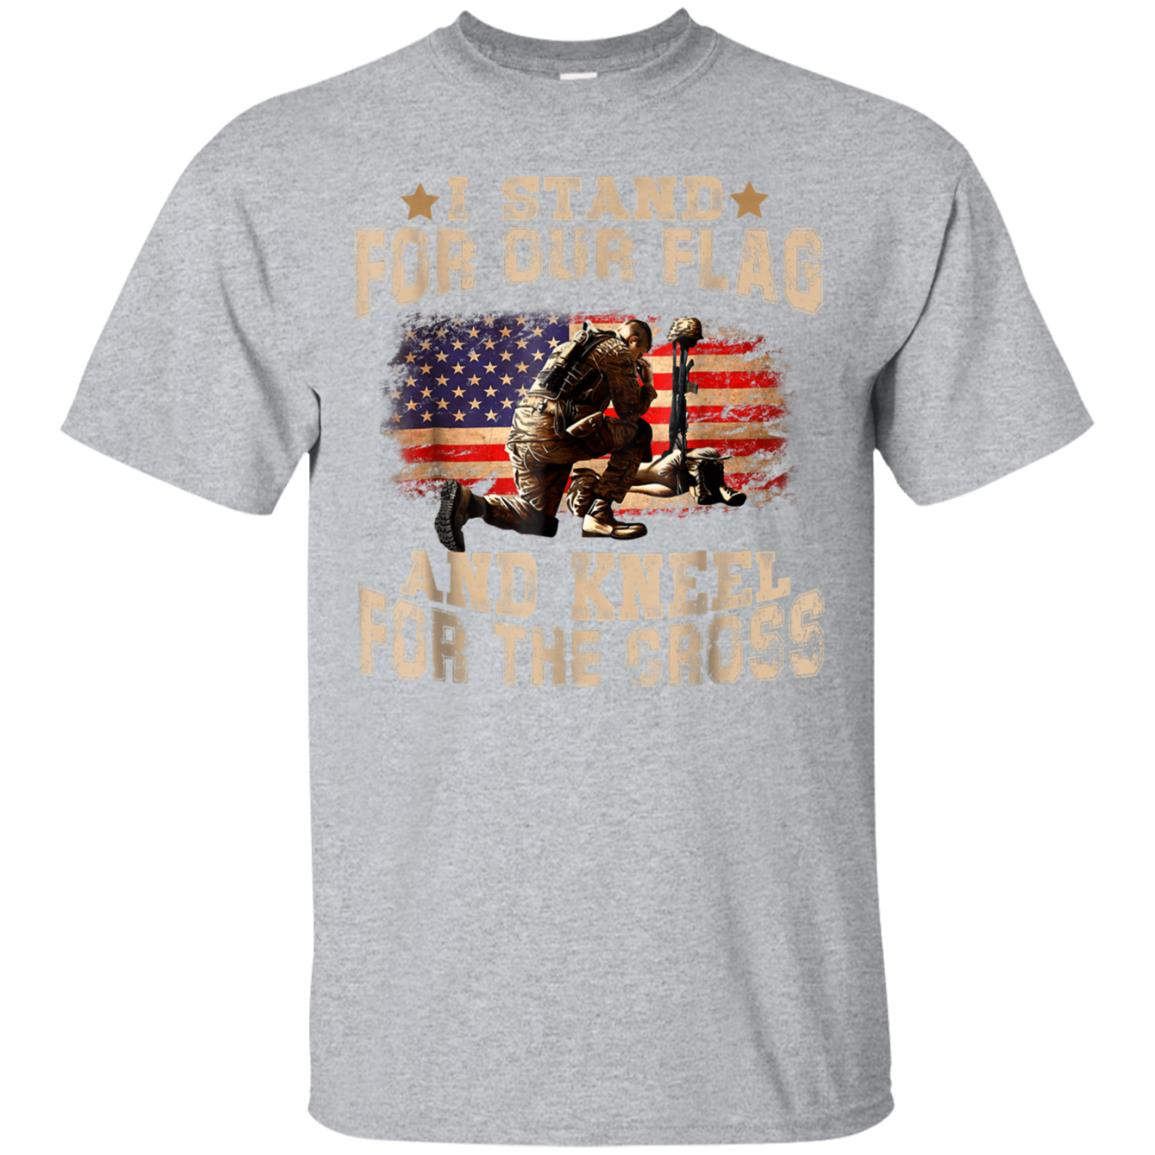 USA T-shirt American Flag US America United States Men Women 99promocode